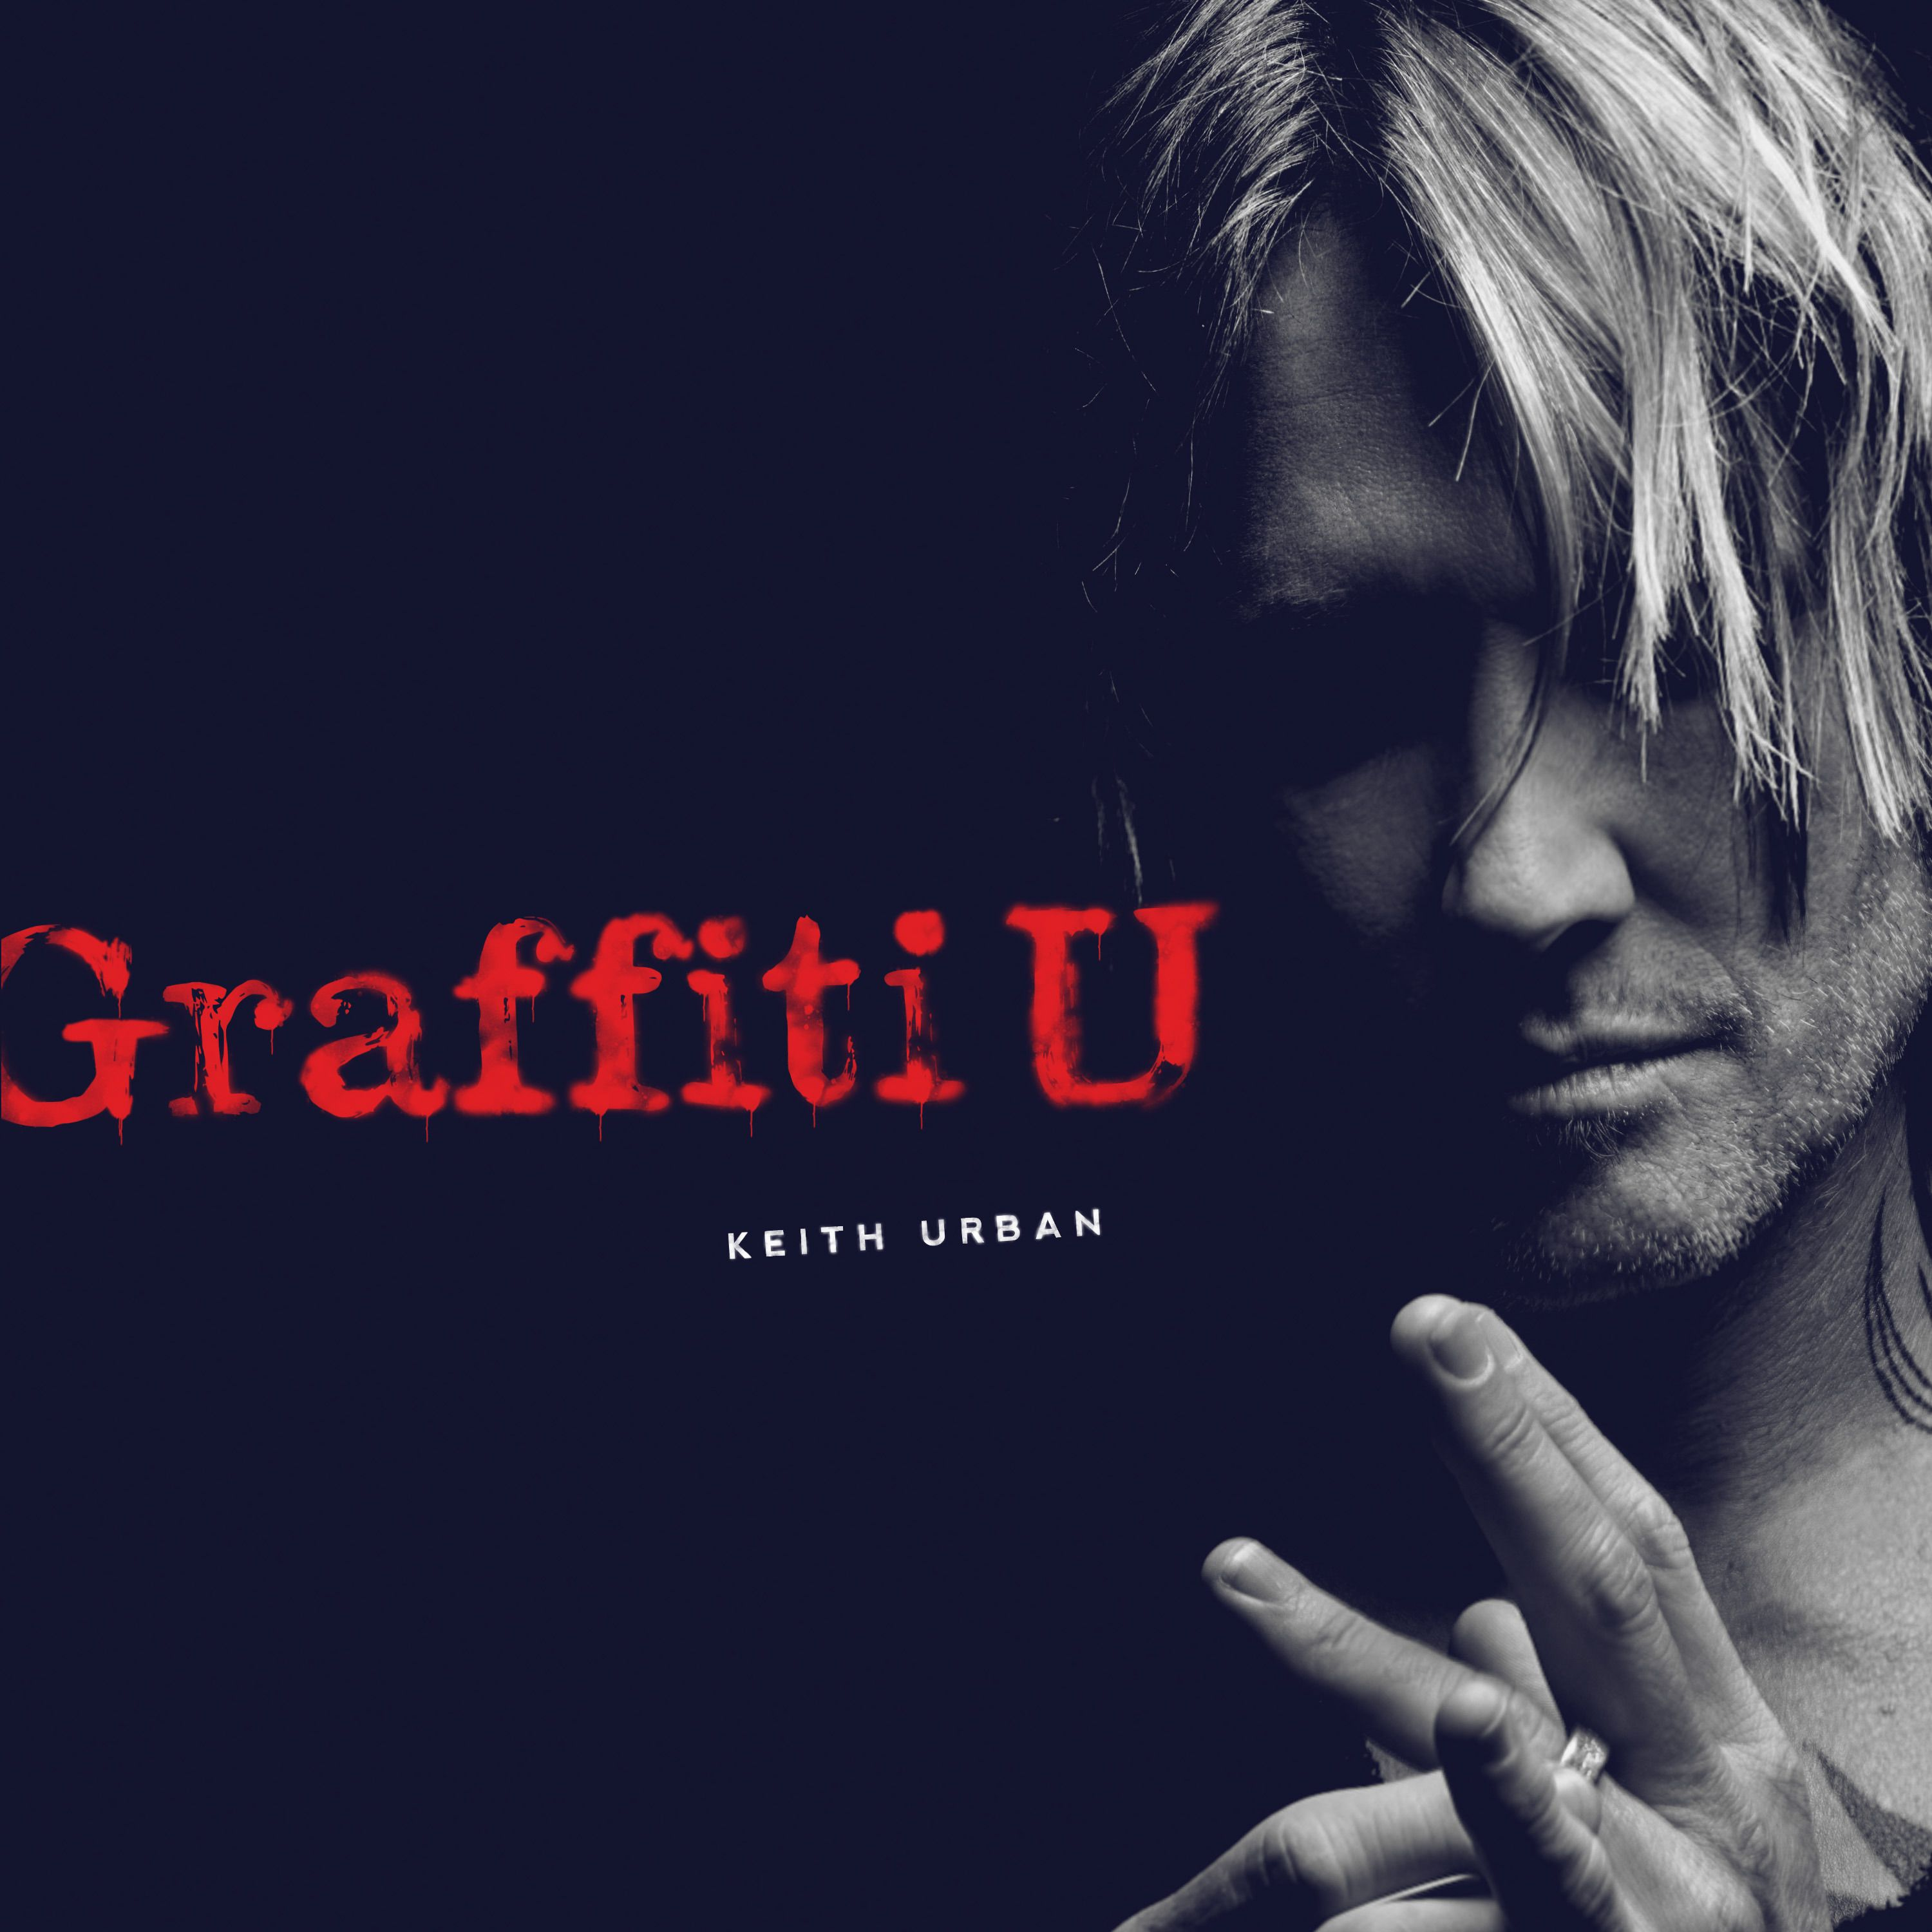 Keith Urban - Graffiti U album cover